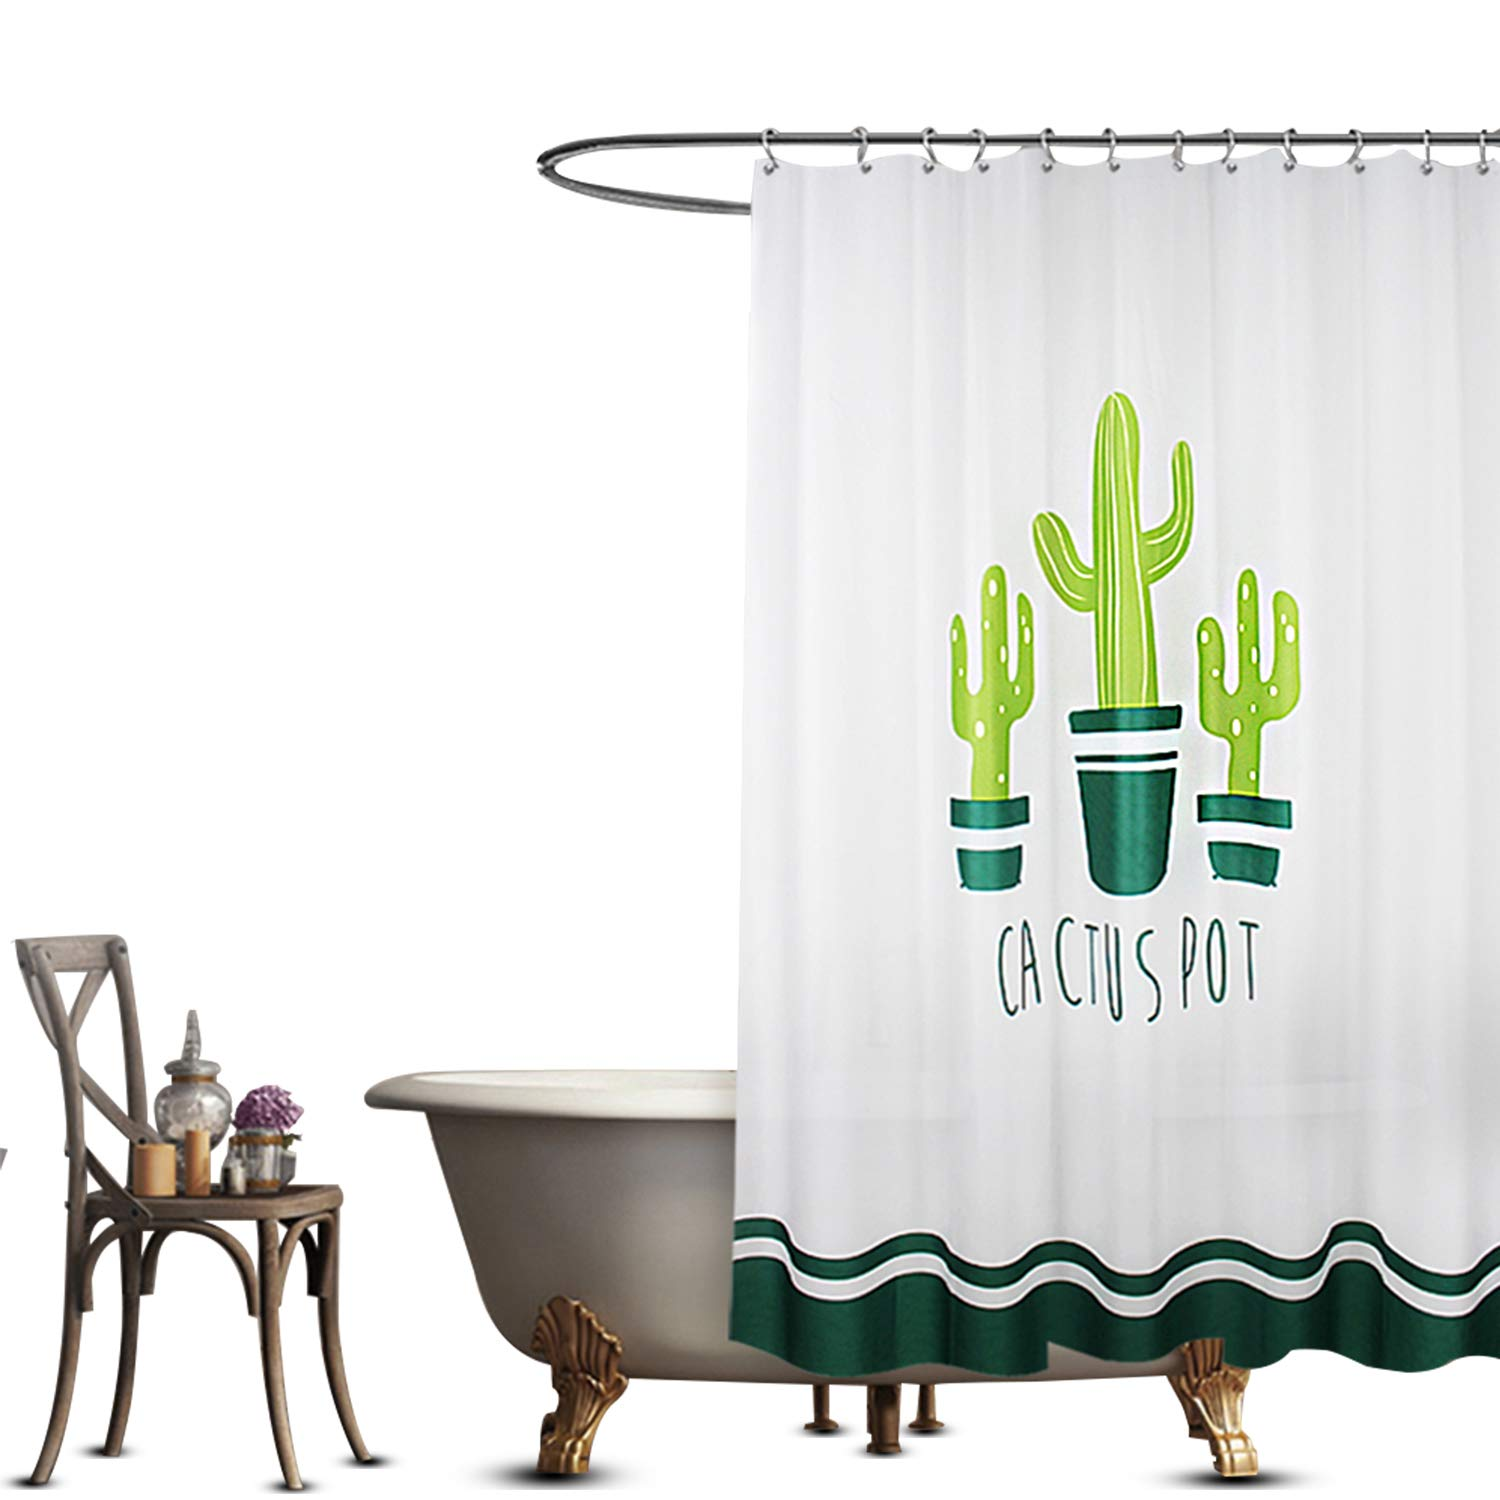 Shower Curtain Waterproof Peva Bathroom Shower Curtains Cactus Design 72x72' Inch FuXing